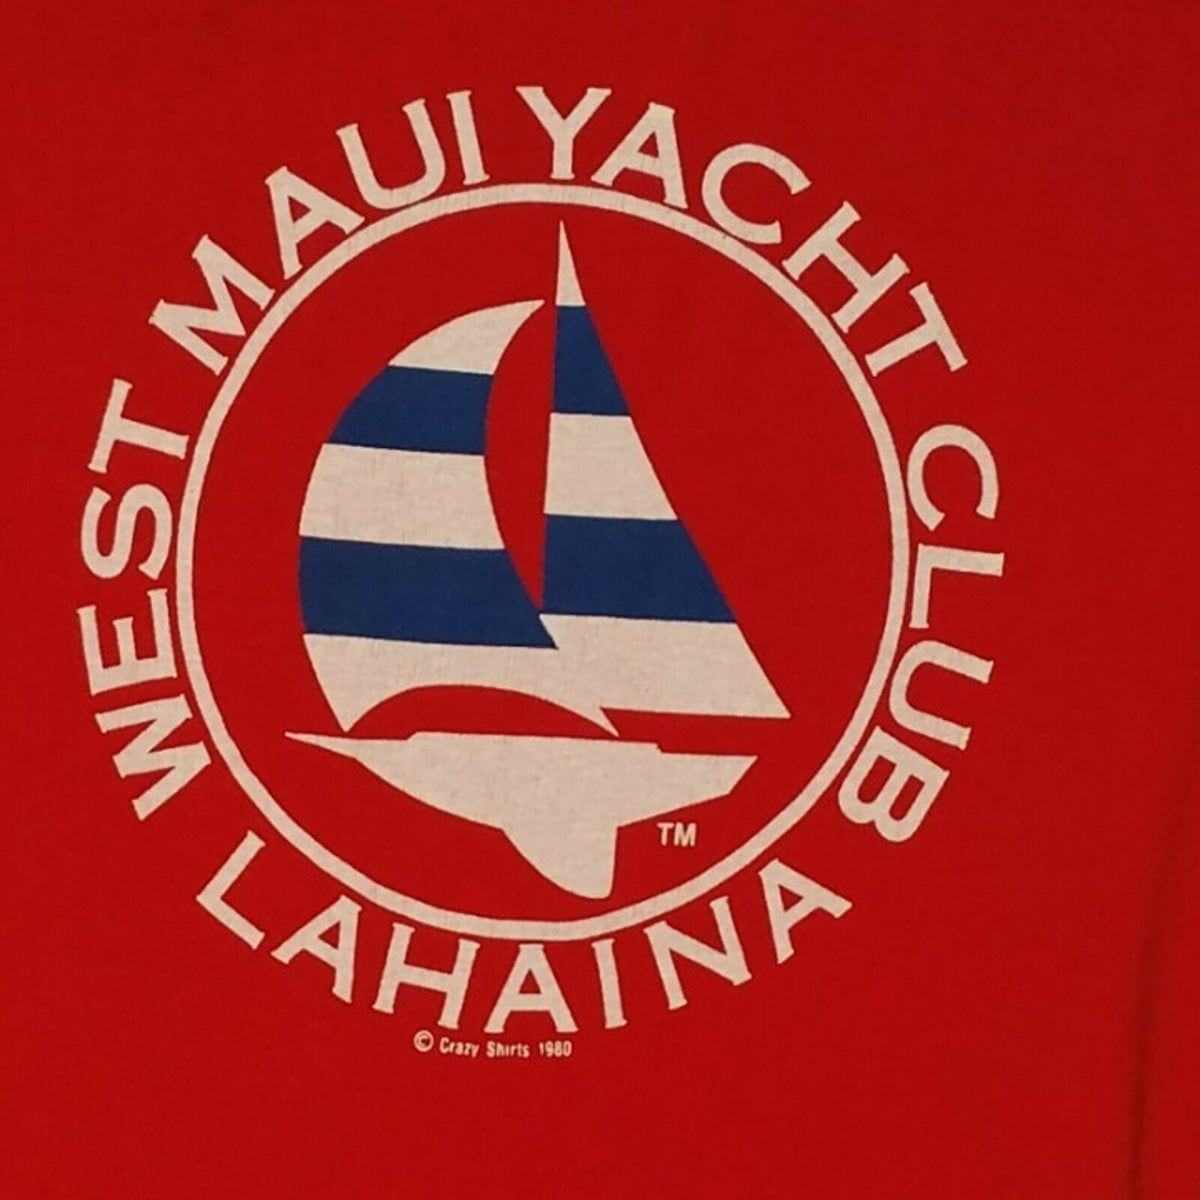 Bmw Of Maui: Crazy Shirts West Maui Yacht Club Large In 2020